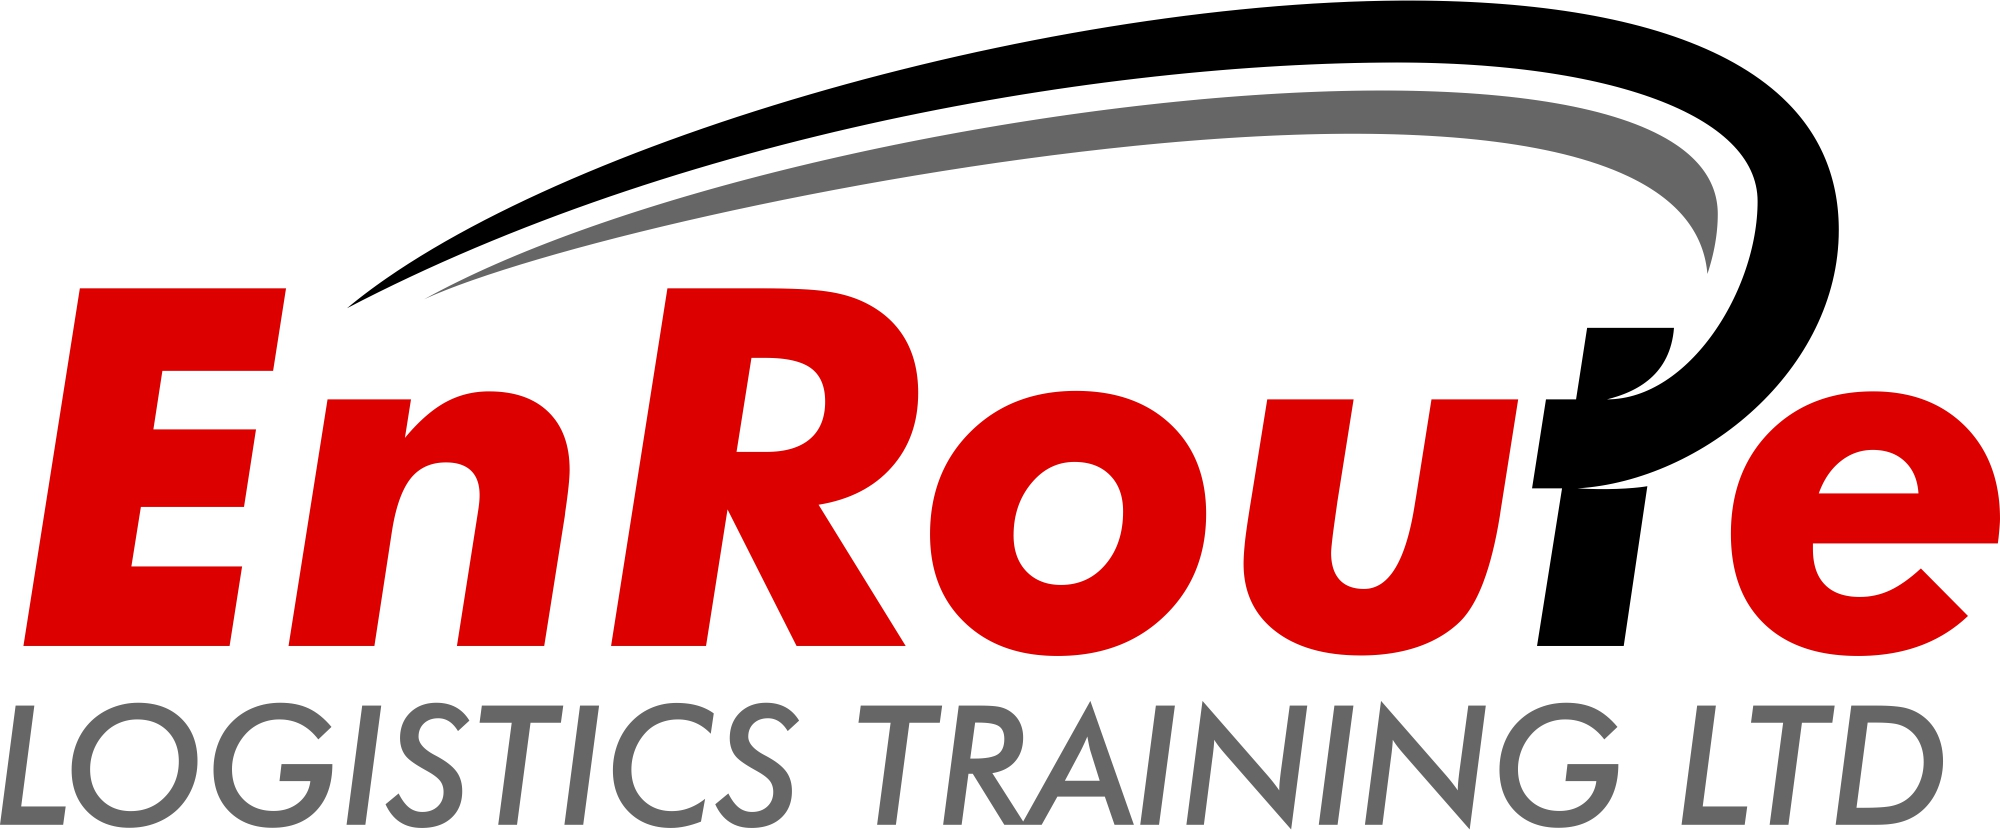 EnRoute Logistics Training Ltd1jpg